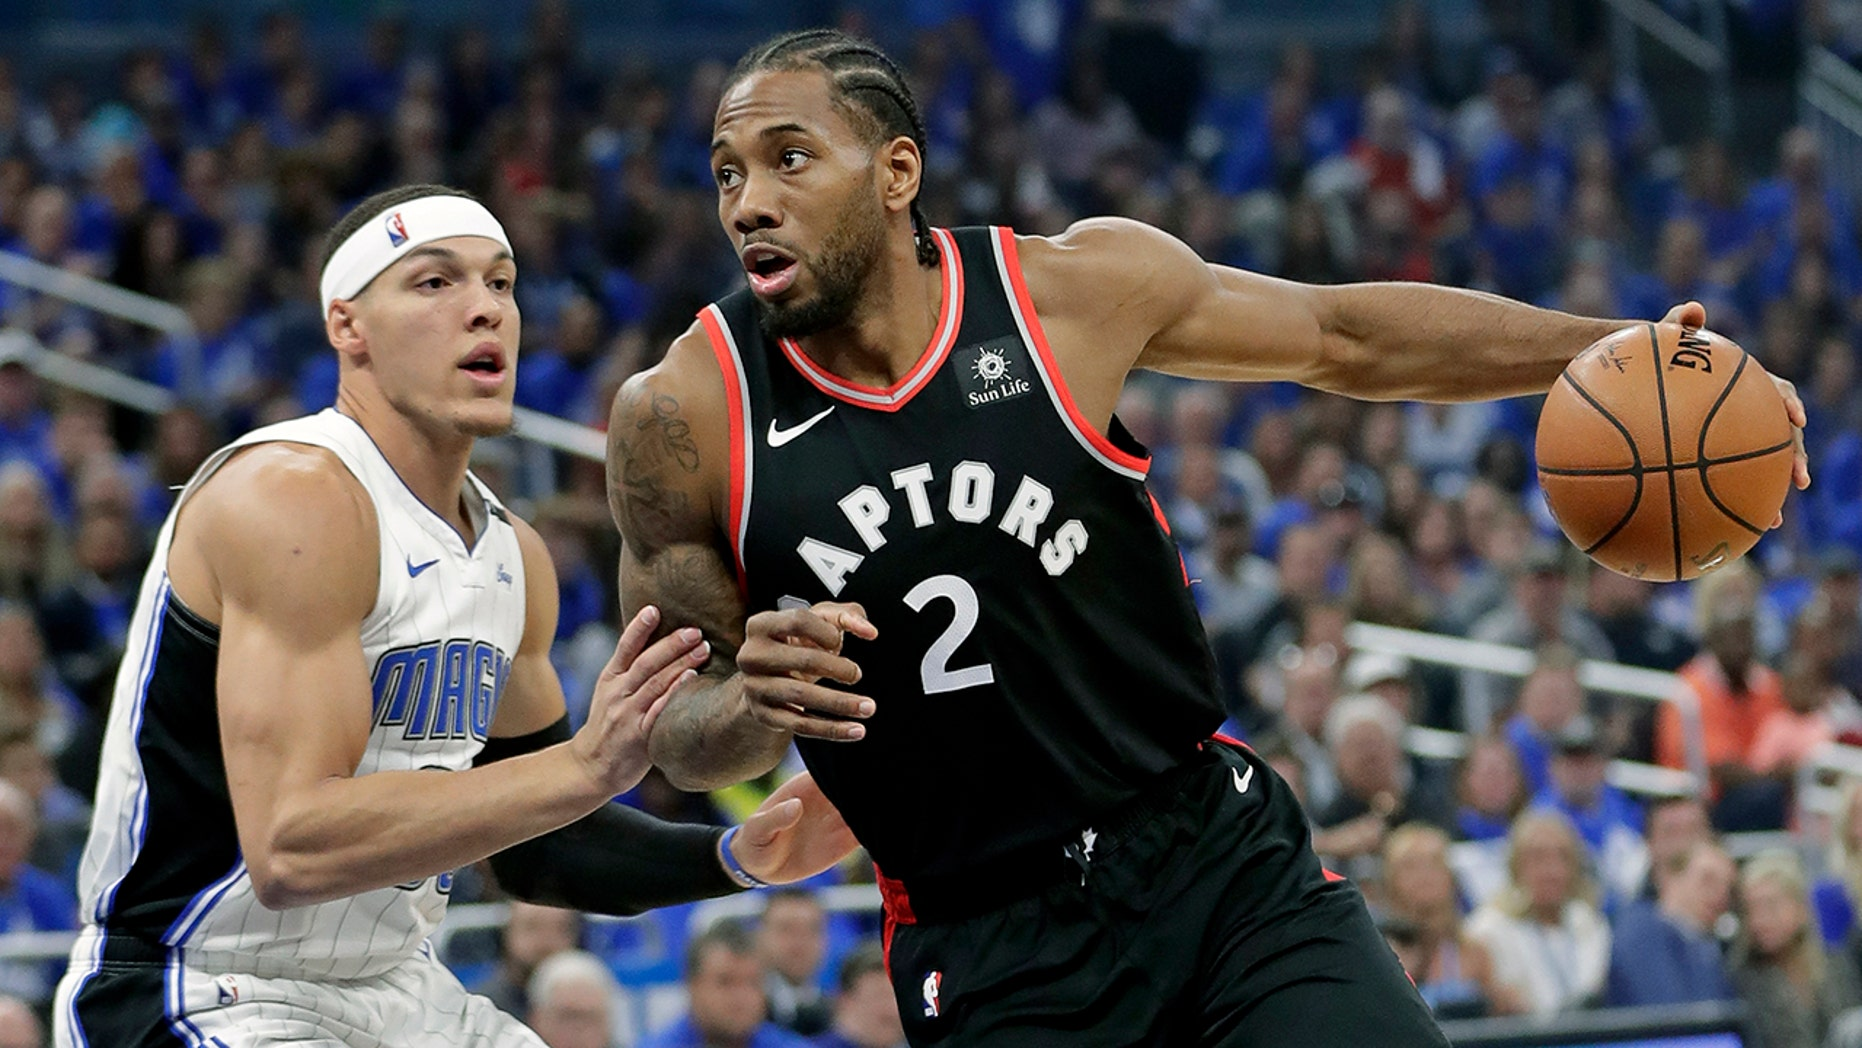 Westlake Legal Group NBA-Kawhi-Leonard3 Leonard scores 34, Raptors top Magic 107-85 for 3-1 lead fox-news/sports/nba/toronto-raptors fox-news/sports/nba/orlando-magic fox-news/sports/nba-playoffs fox-news/sports/nba fnc/sports fnc f34d4f88-d07e-581c-9987-9a344de8e41a Associated Press article